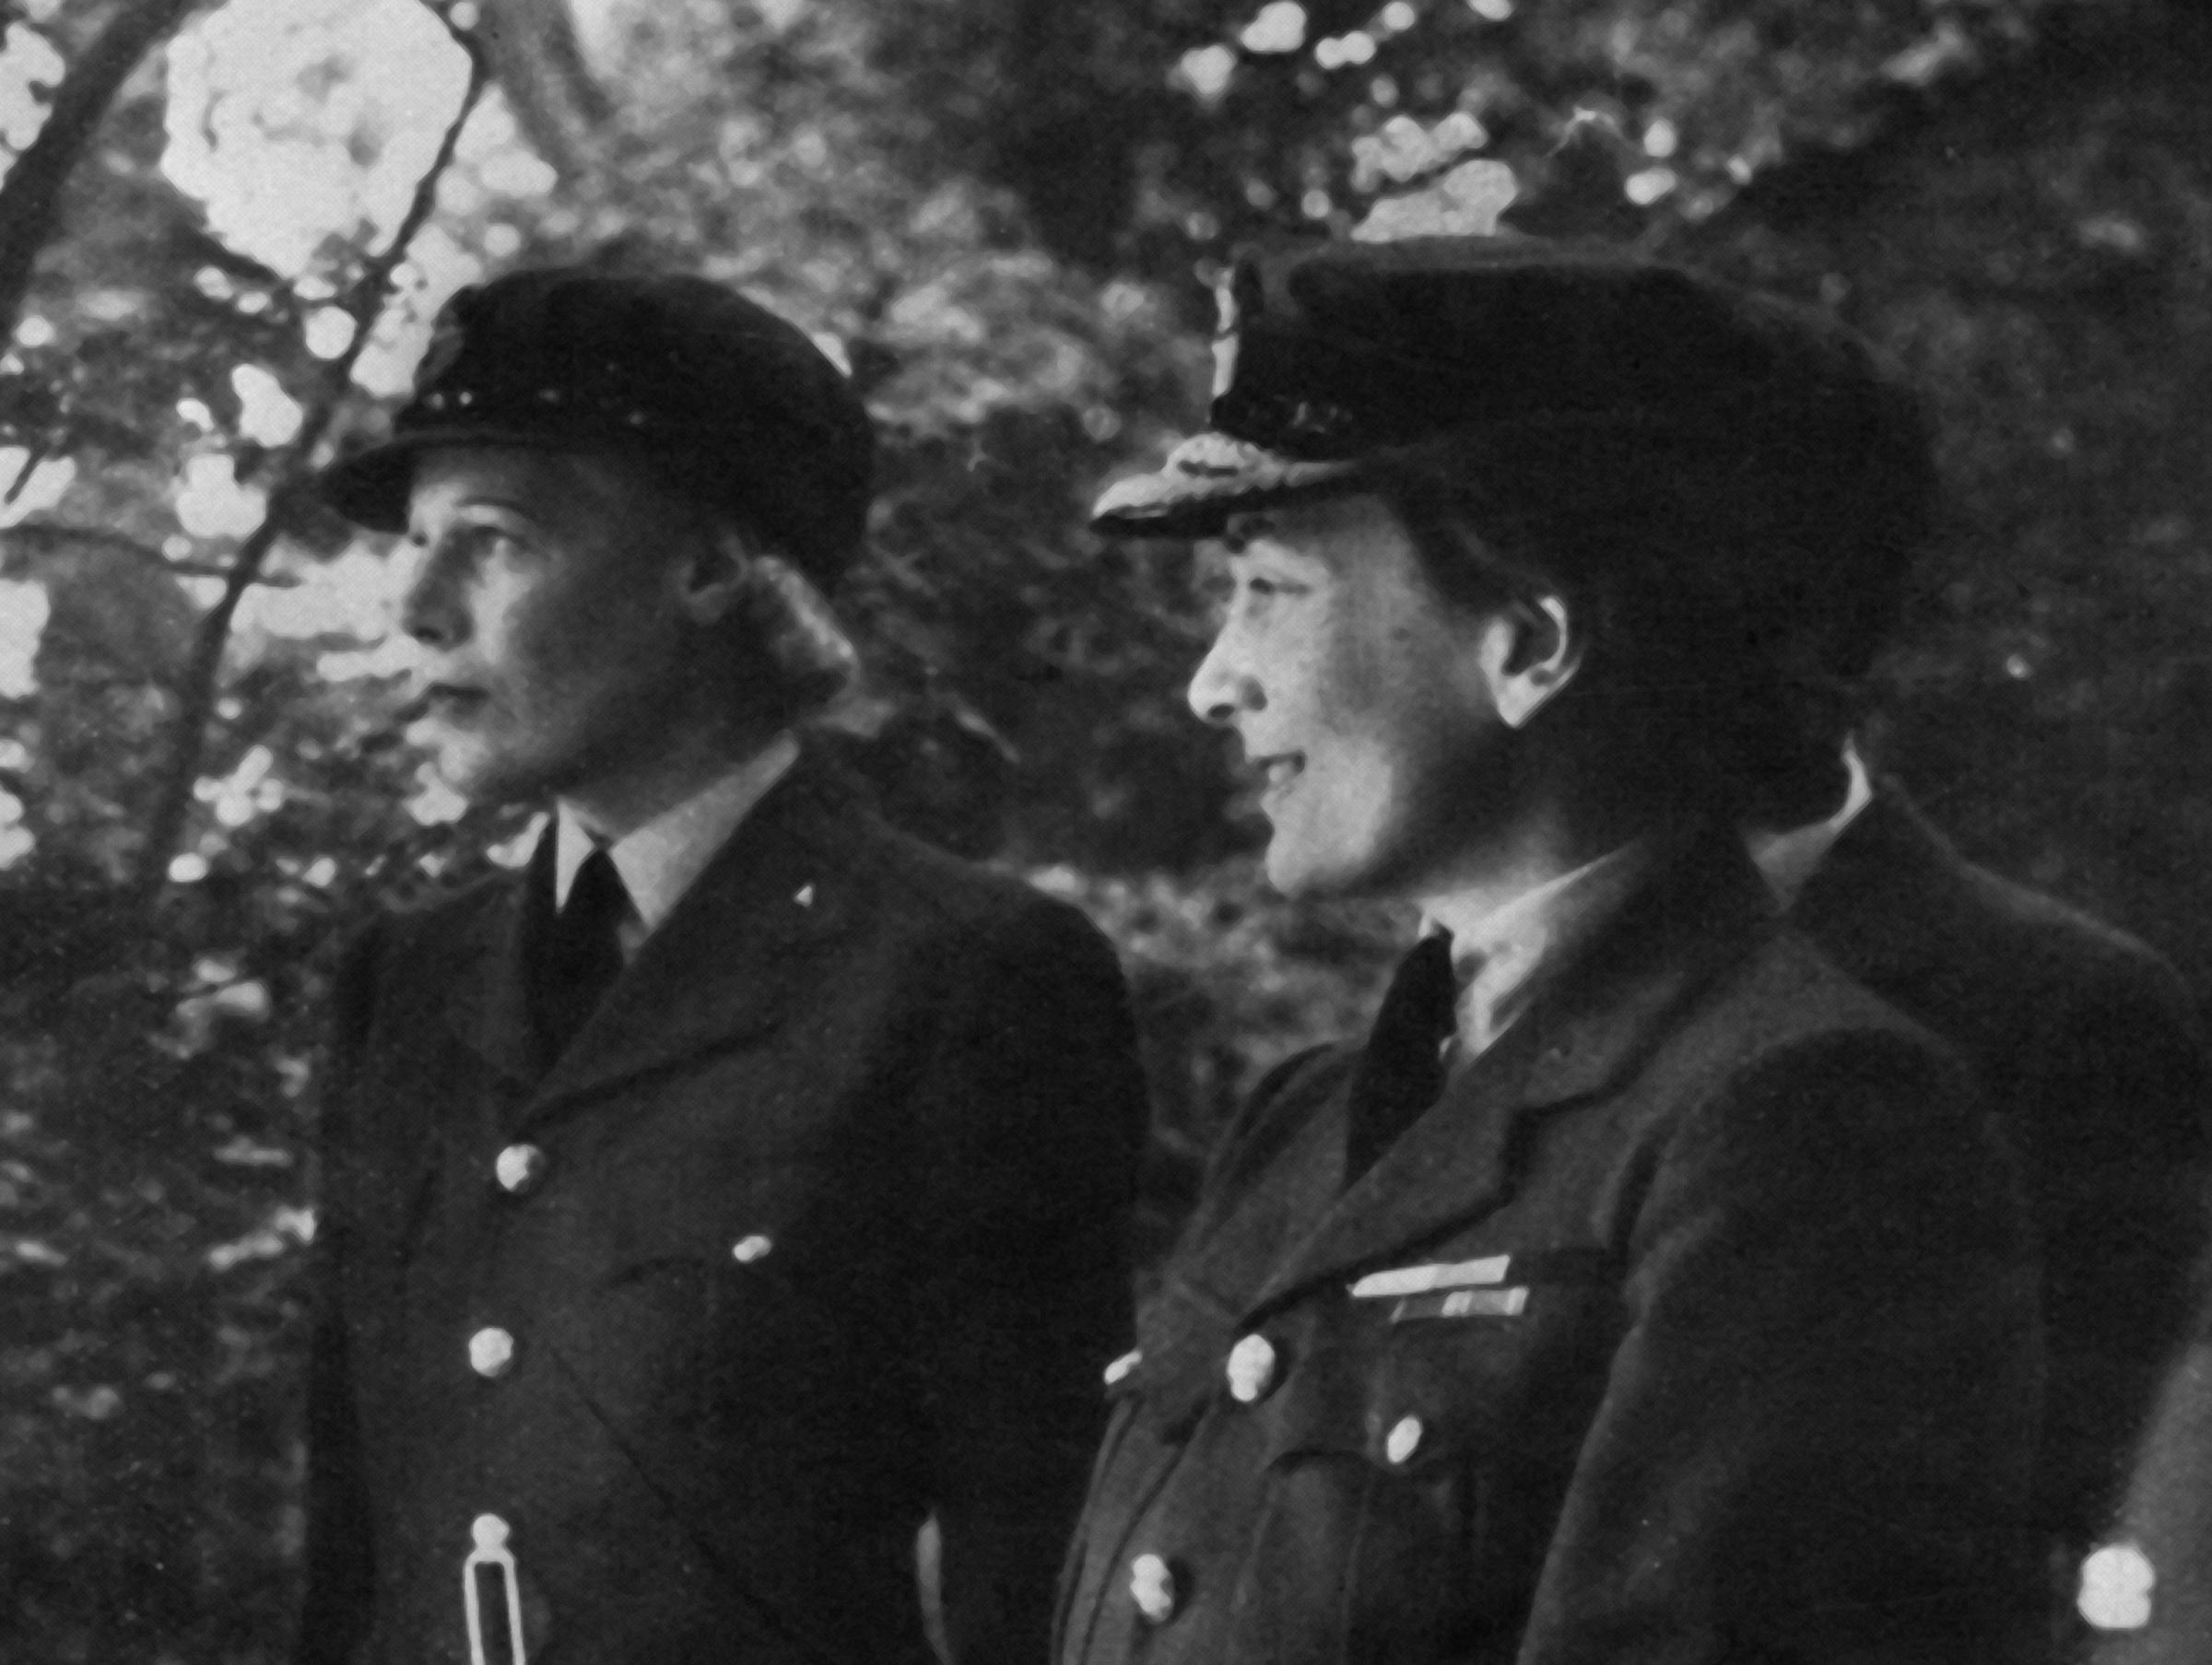 The Duchess of Gloucester, right, was appointed Senior Controller of the Women's Auxiliary Air Force in 1939